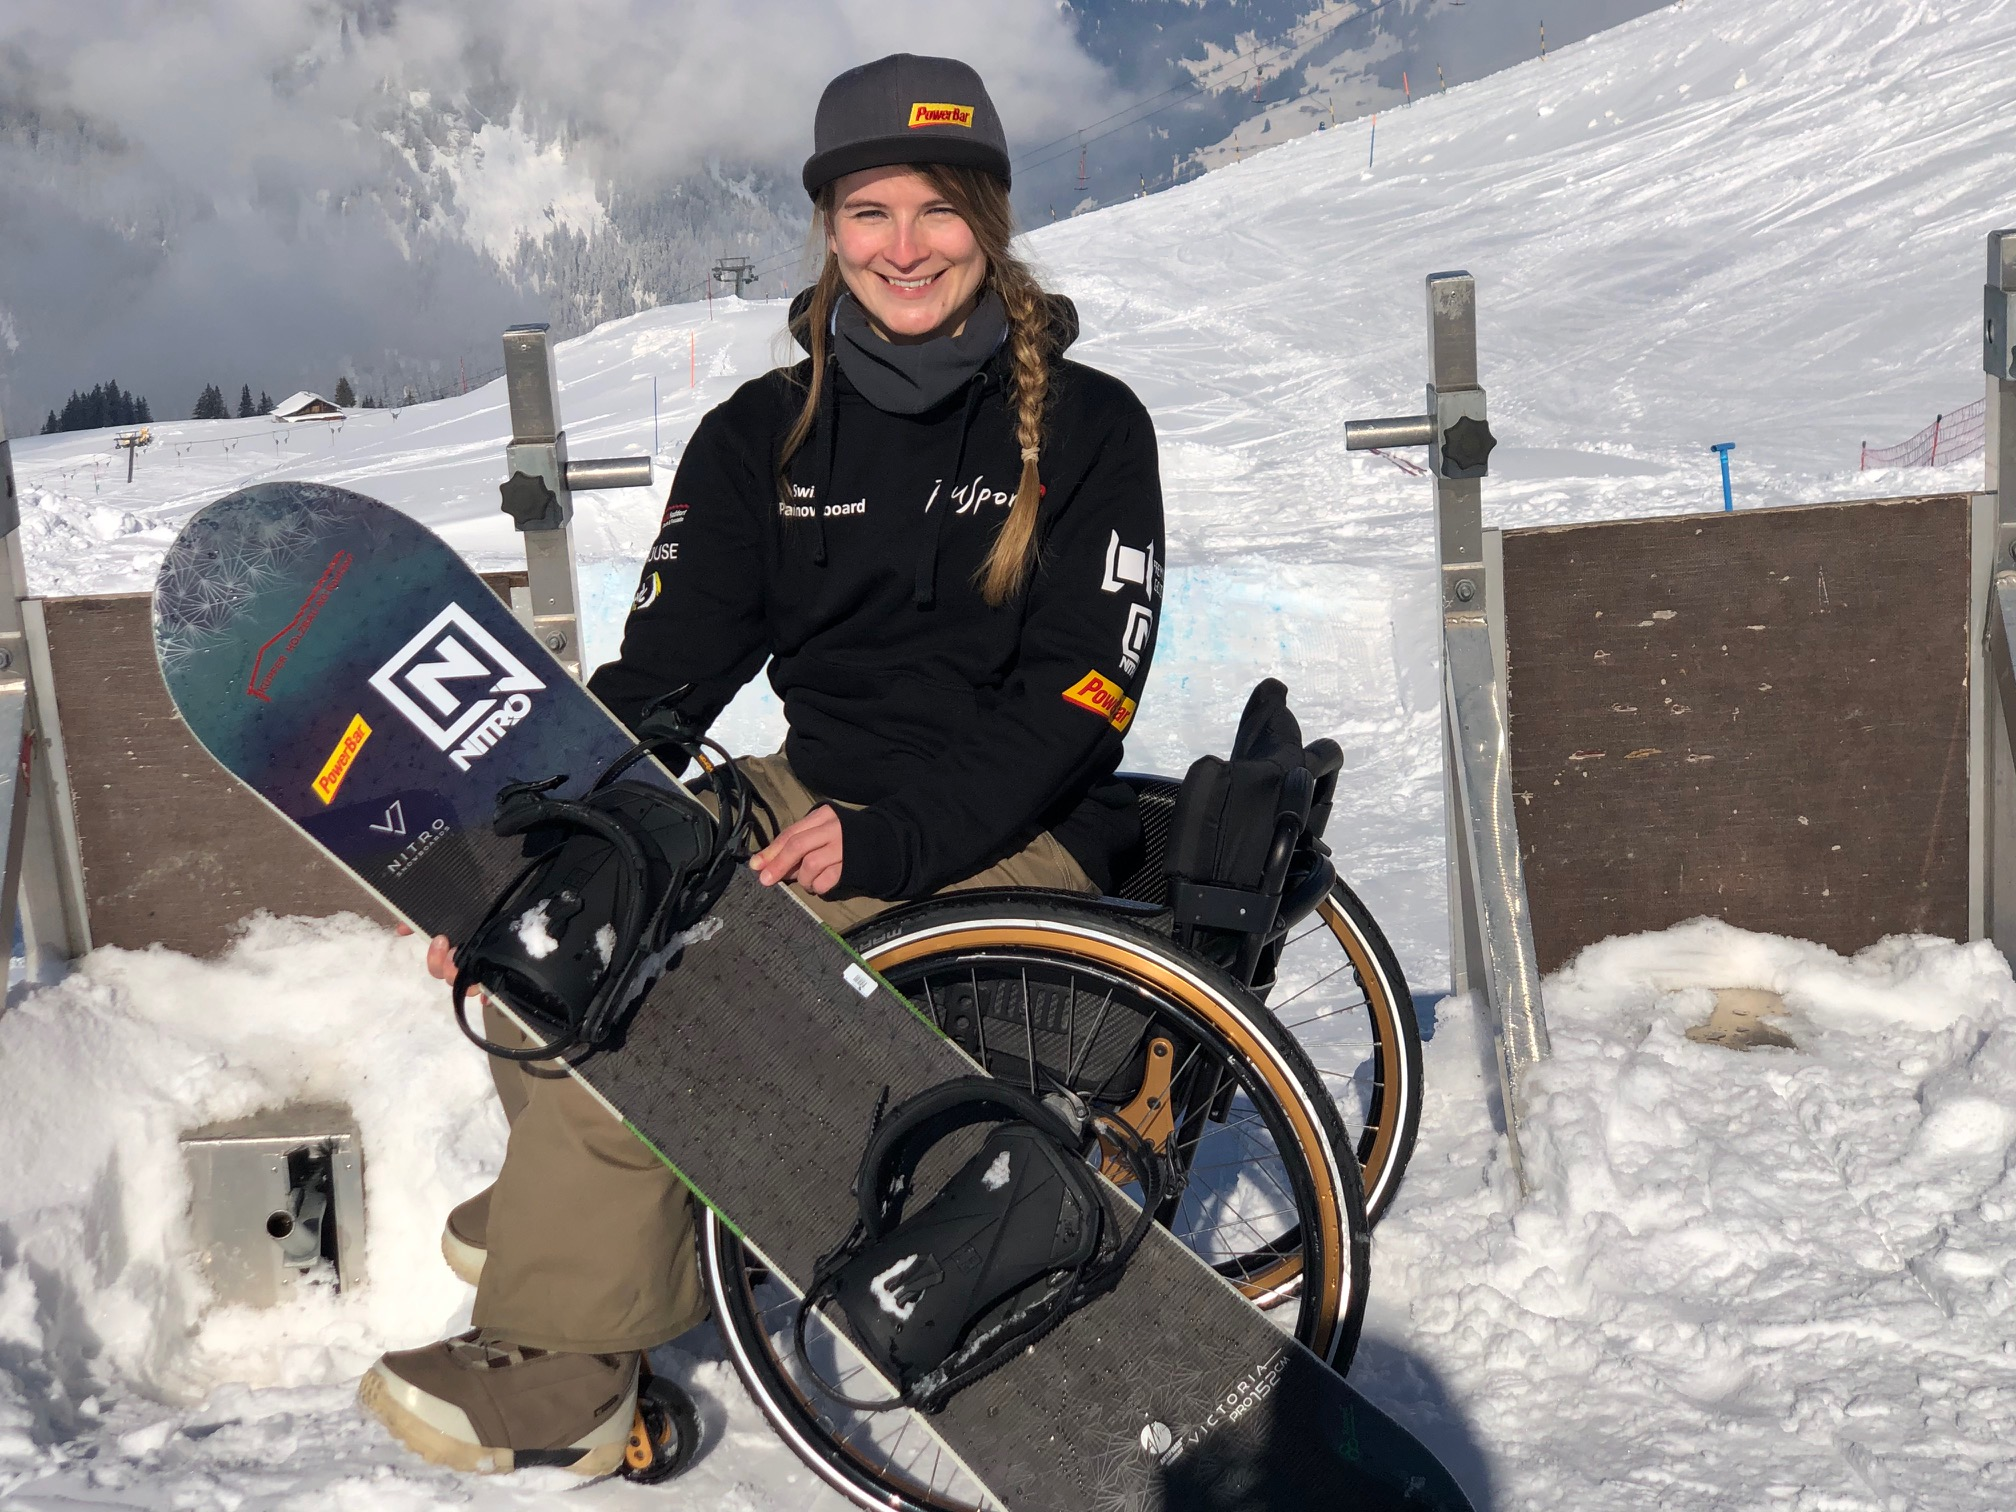 Trading the wheelchair for her snowboard - Geigele Communications